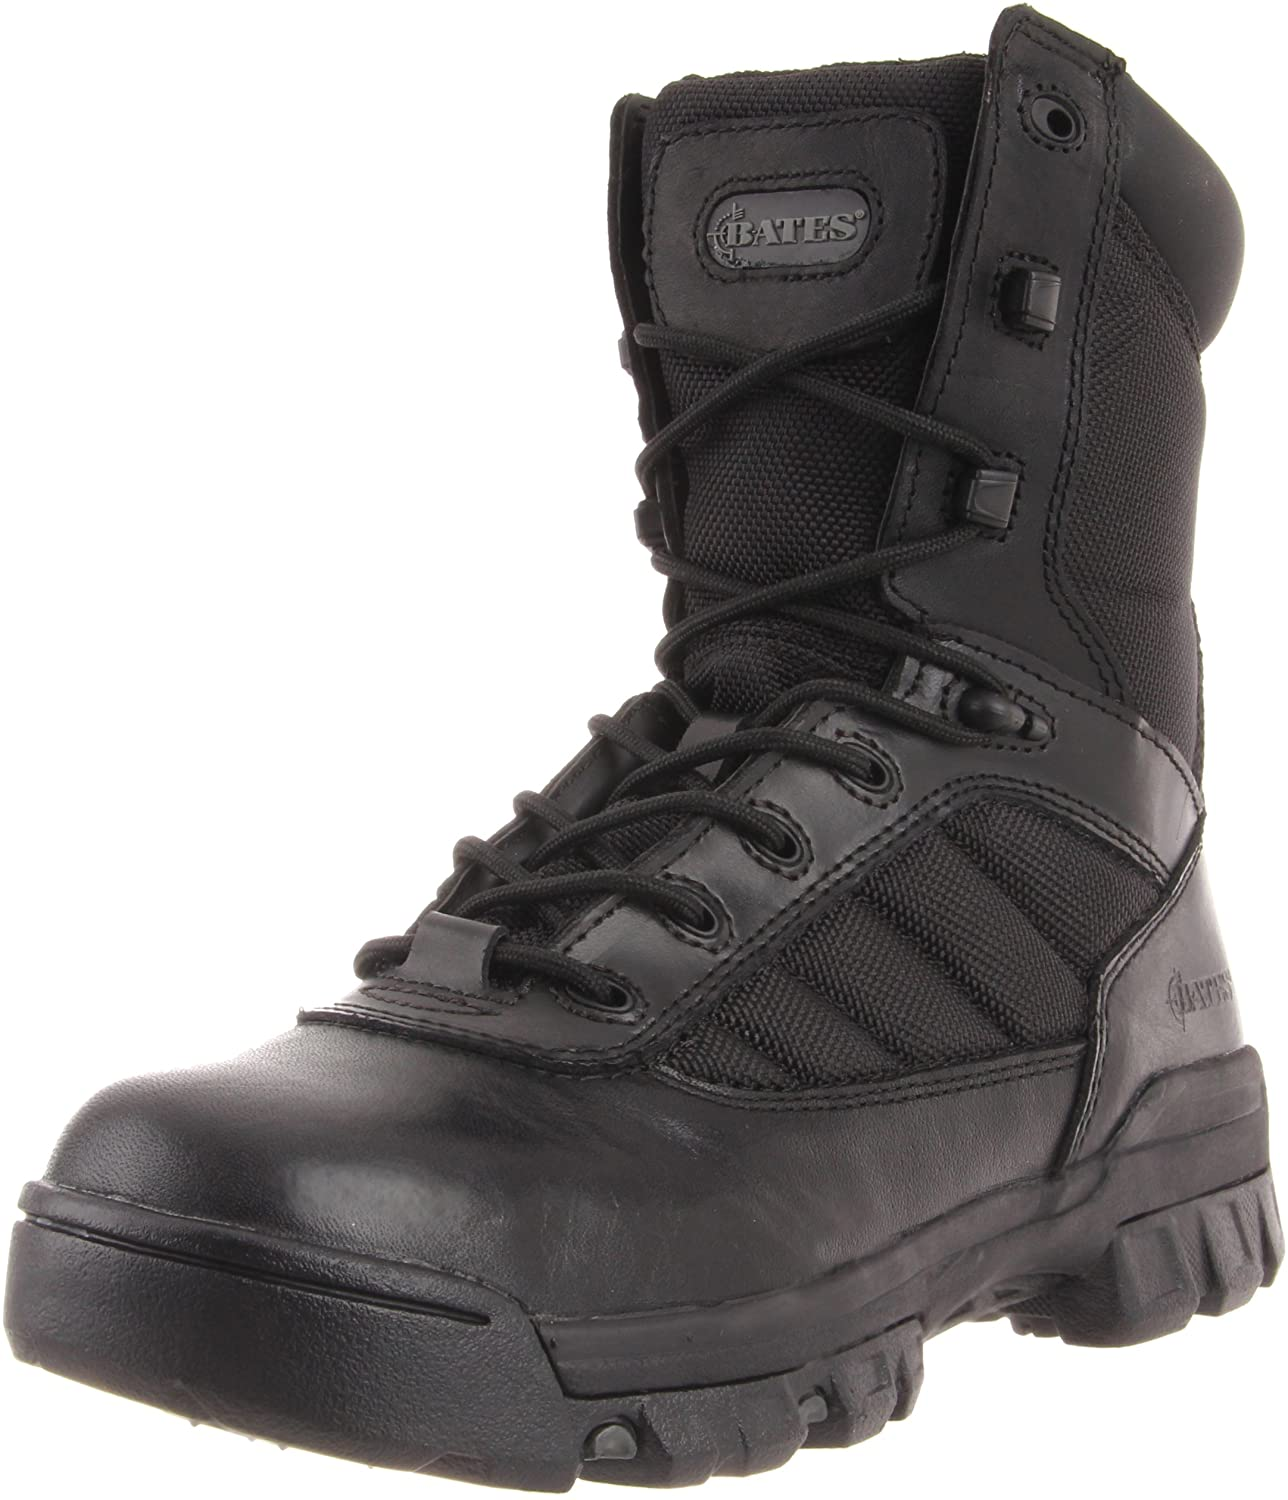 Bates Women's Tactical EMS Boots is a perfect choice for EMT and Paramedics.